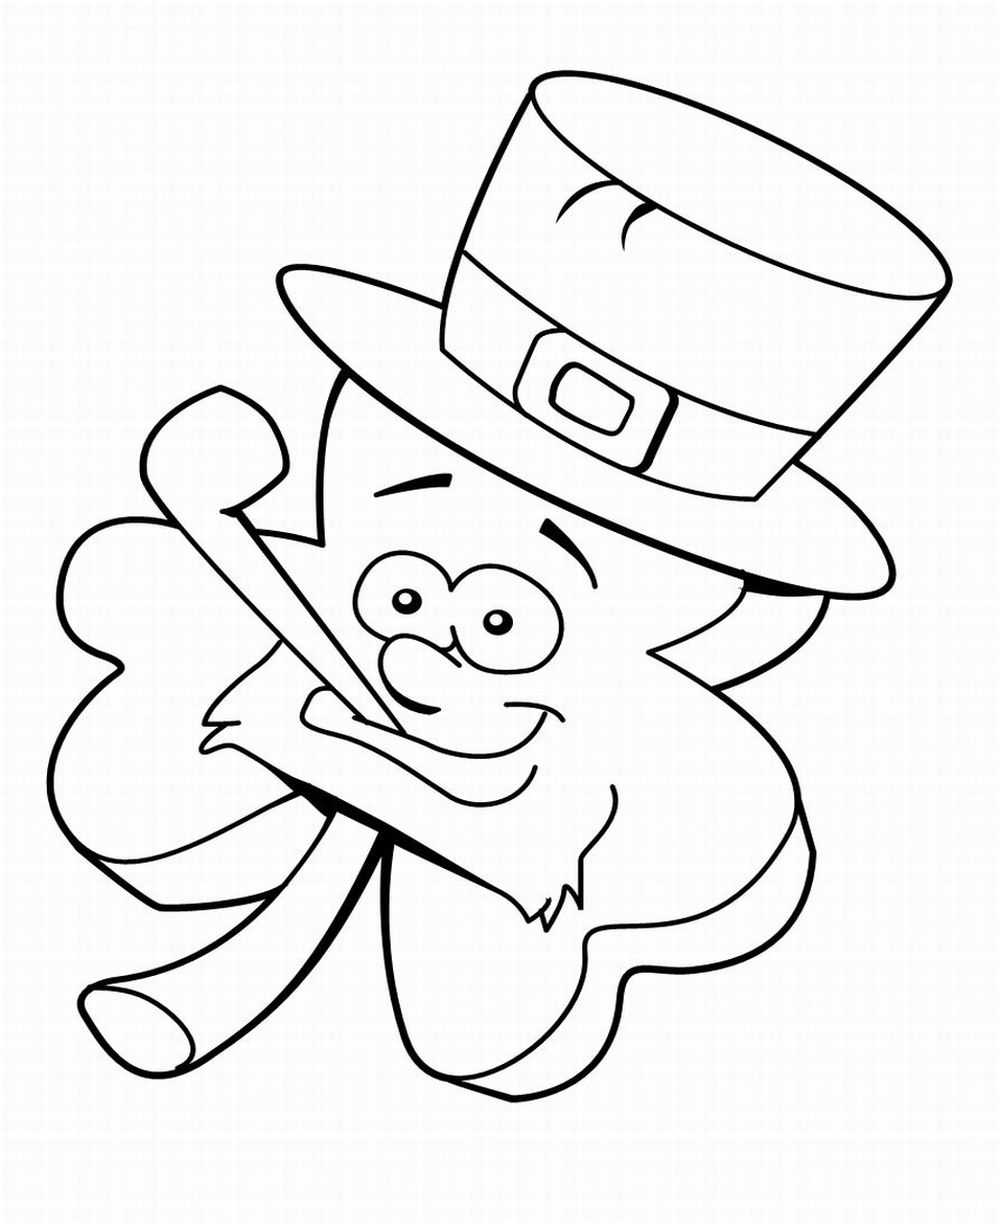 st patty's day coloring pages - coloring pages st patricks day